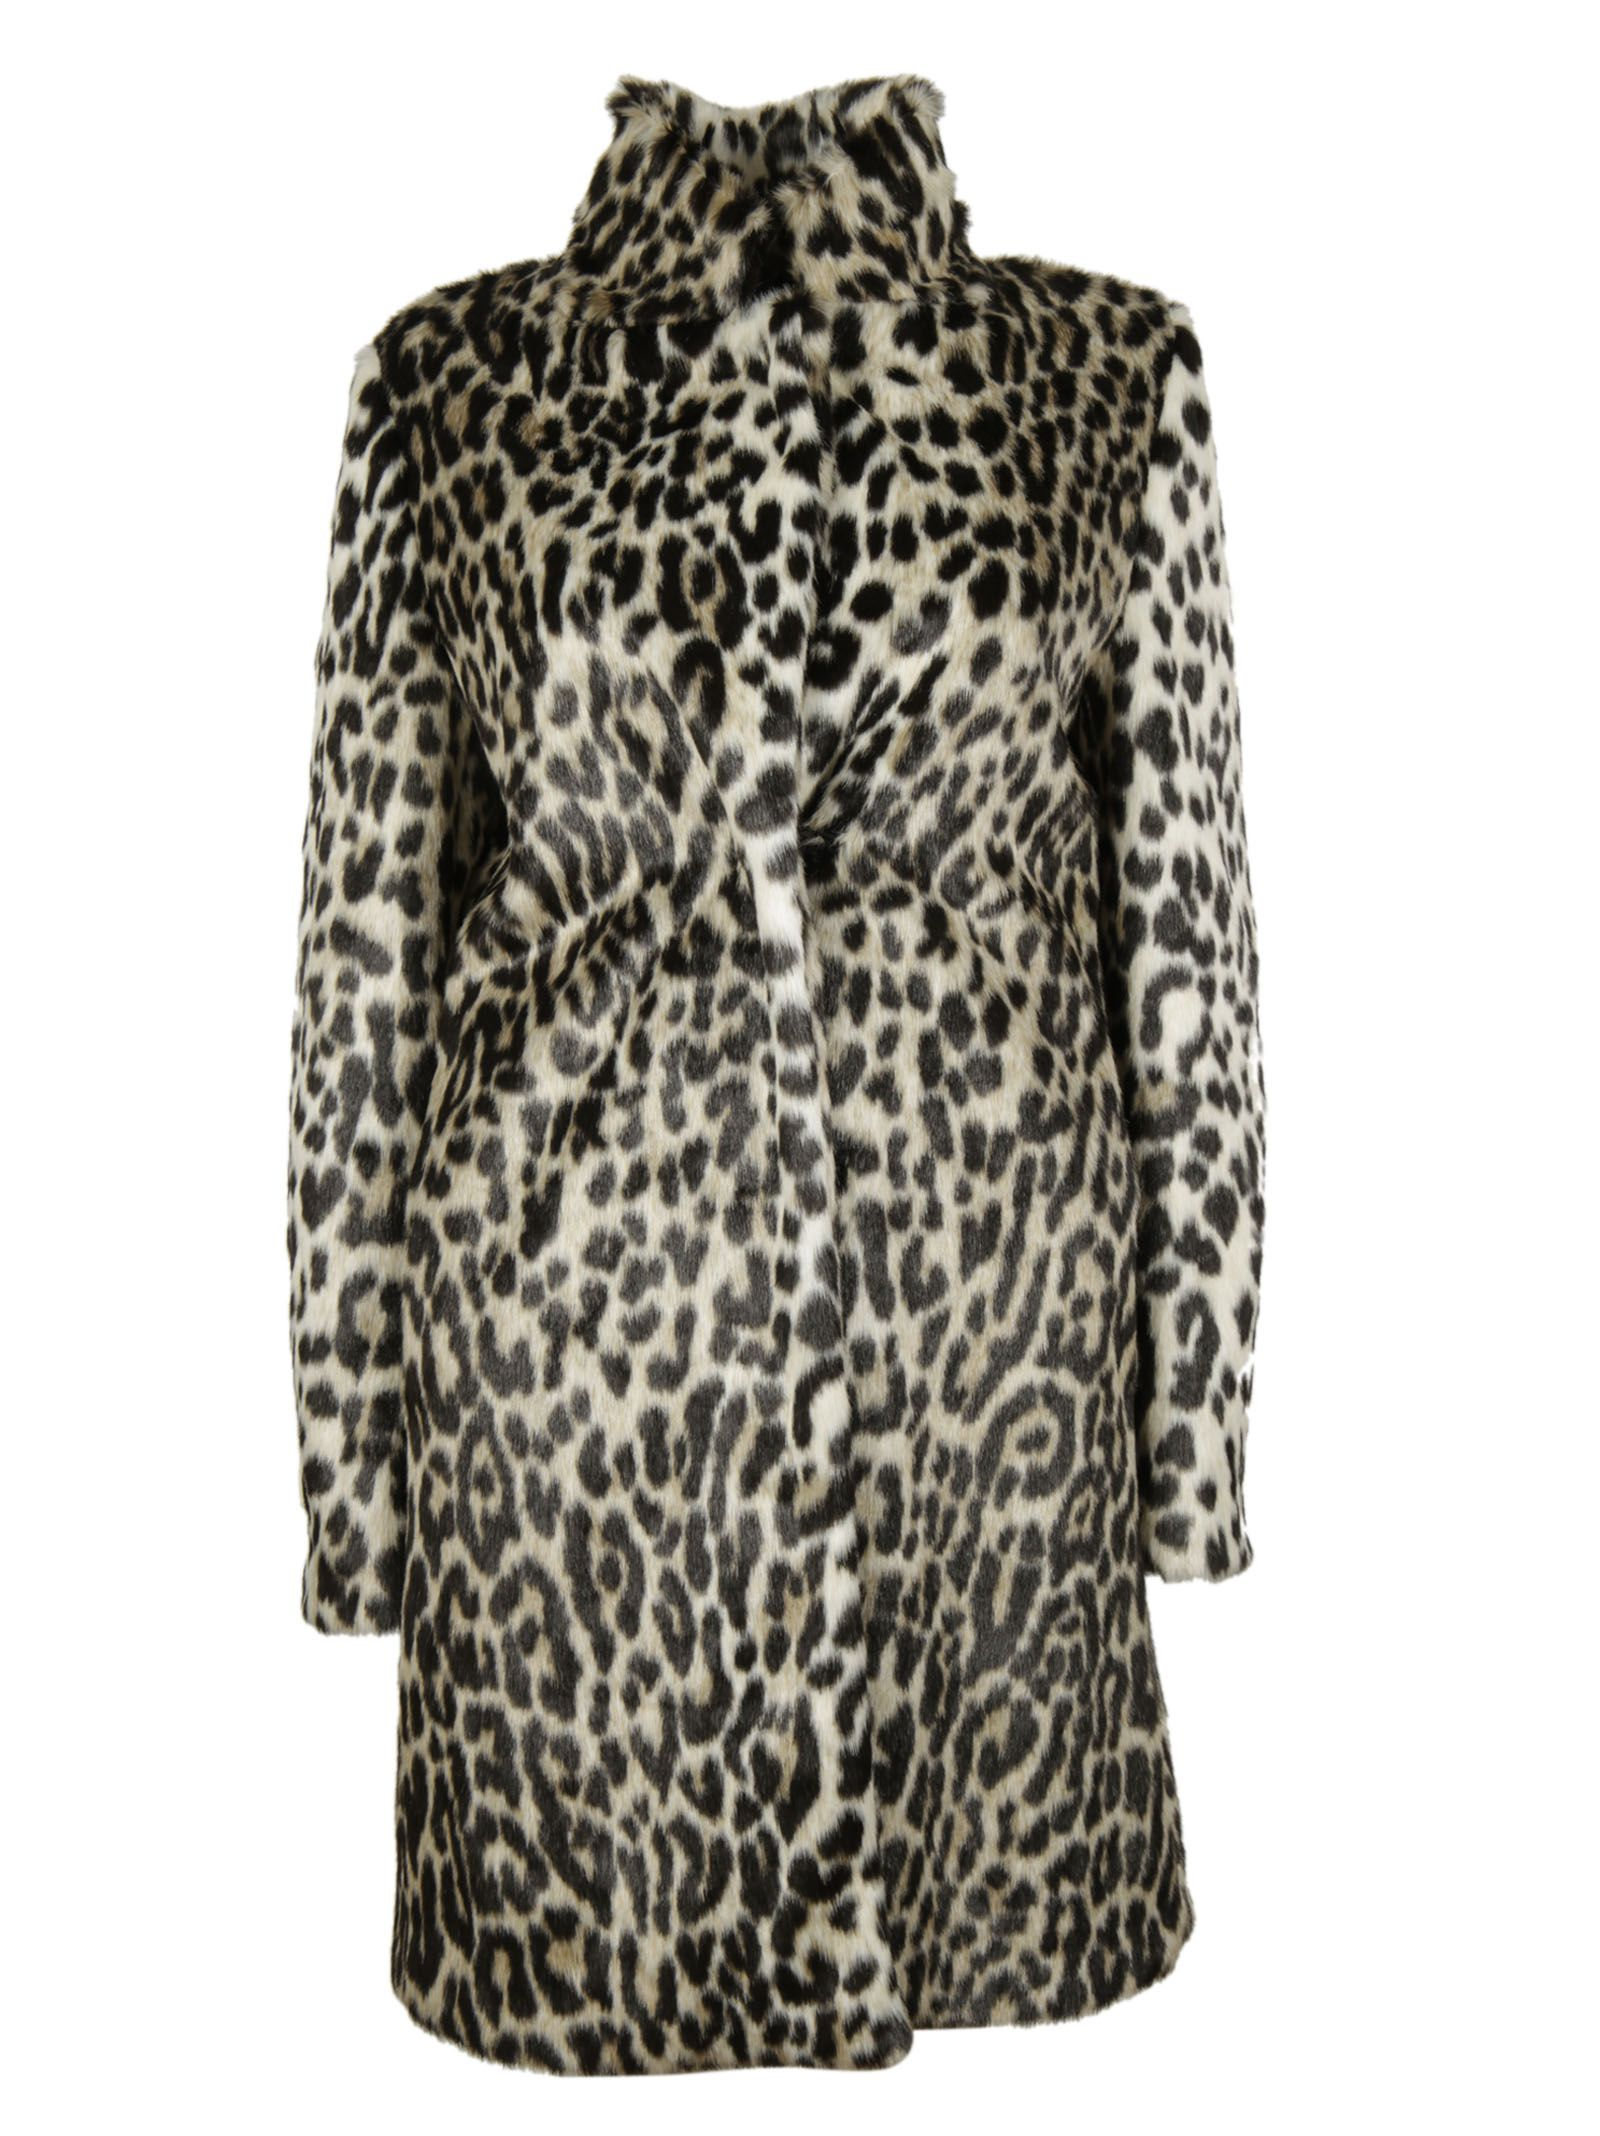 Natural Leopard Alter Fur Coat - Stella McCartney - Circus